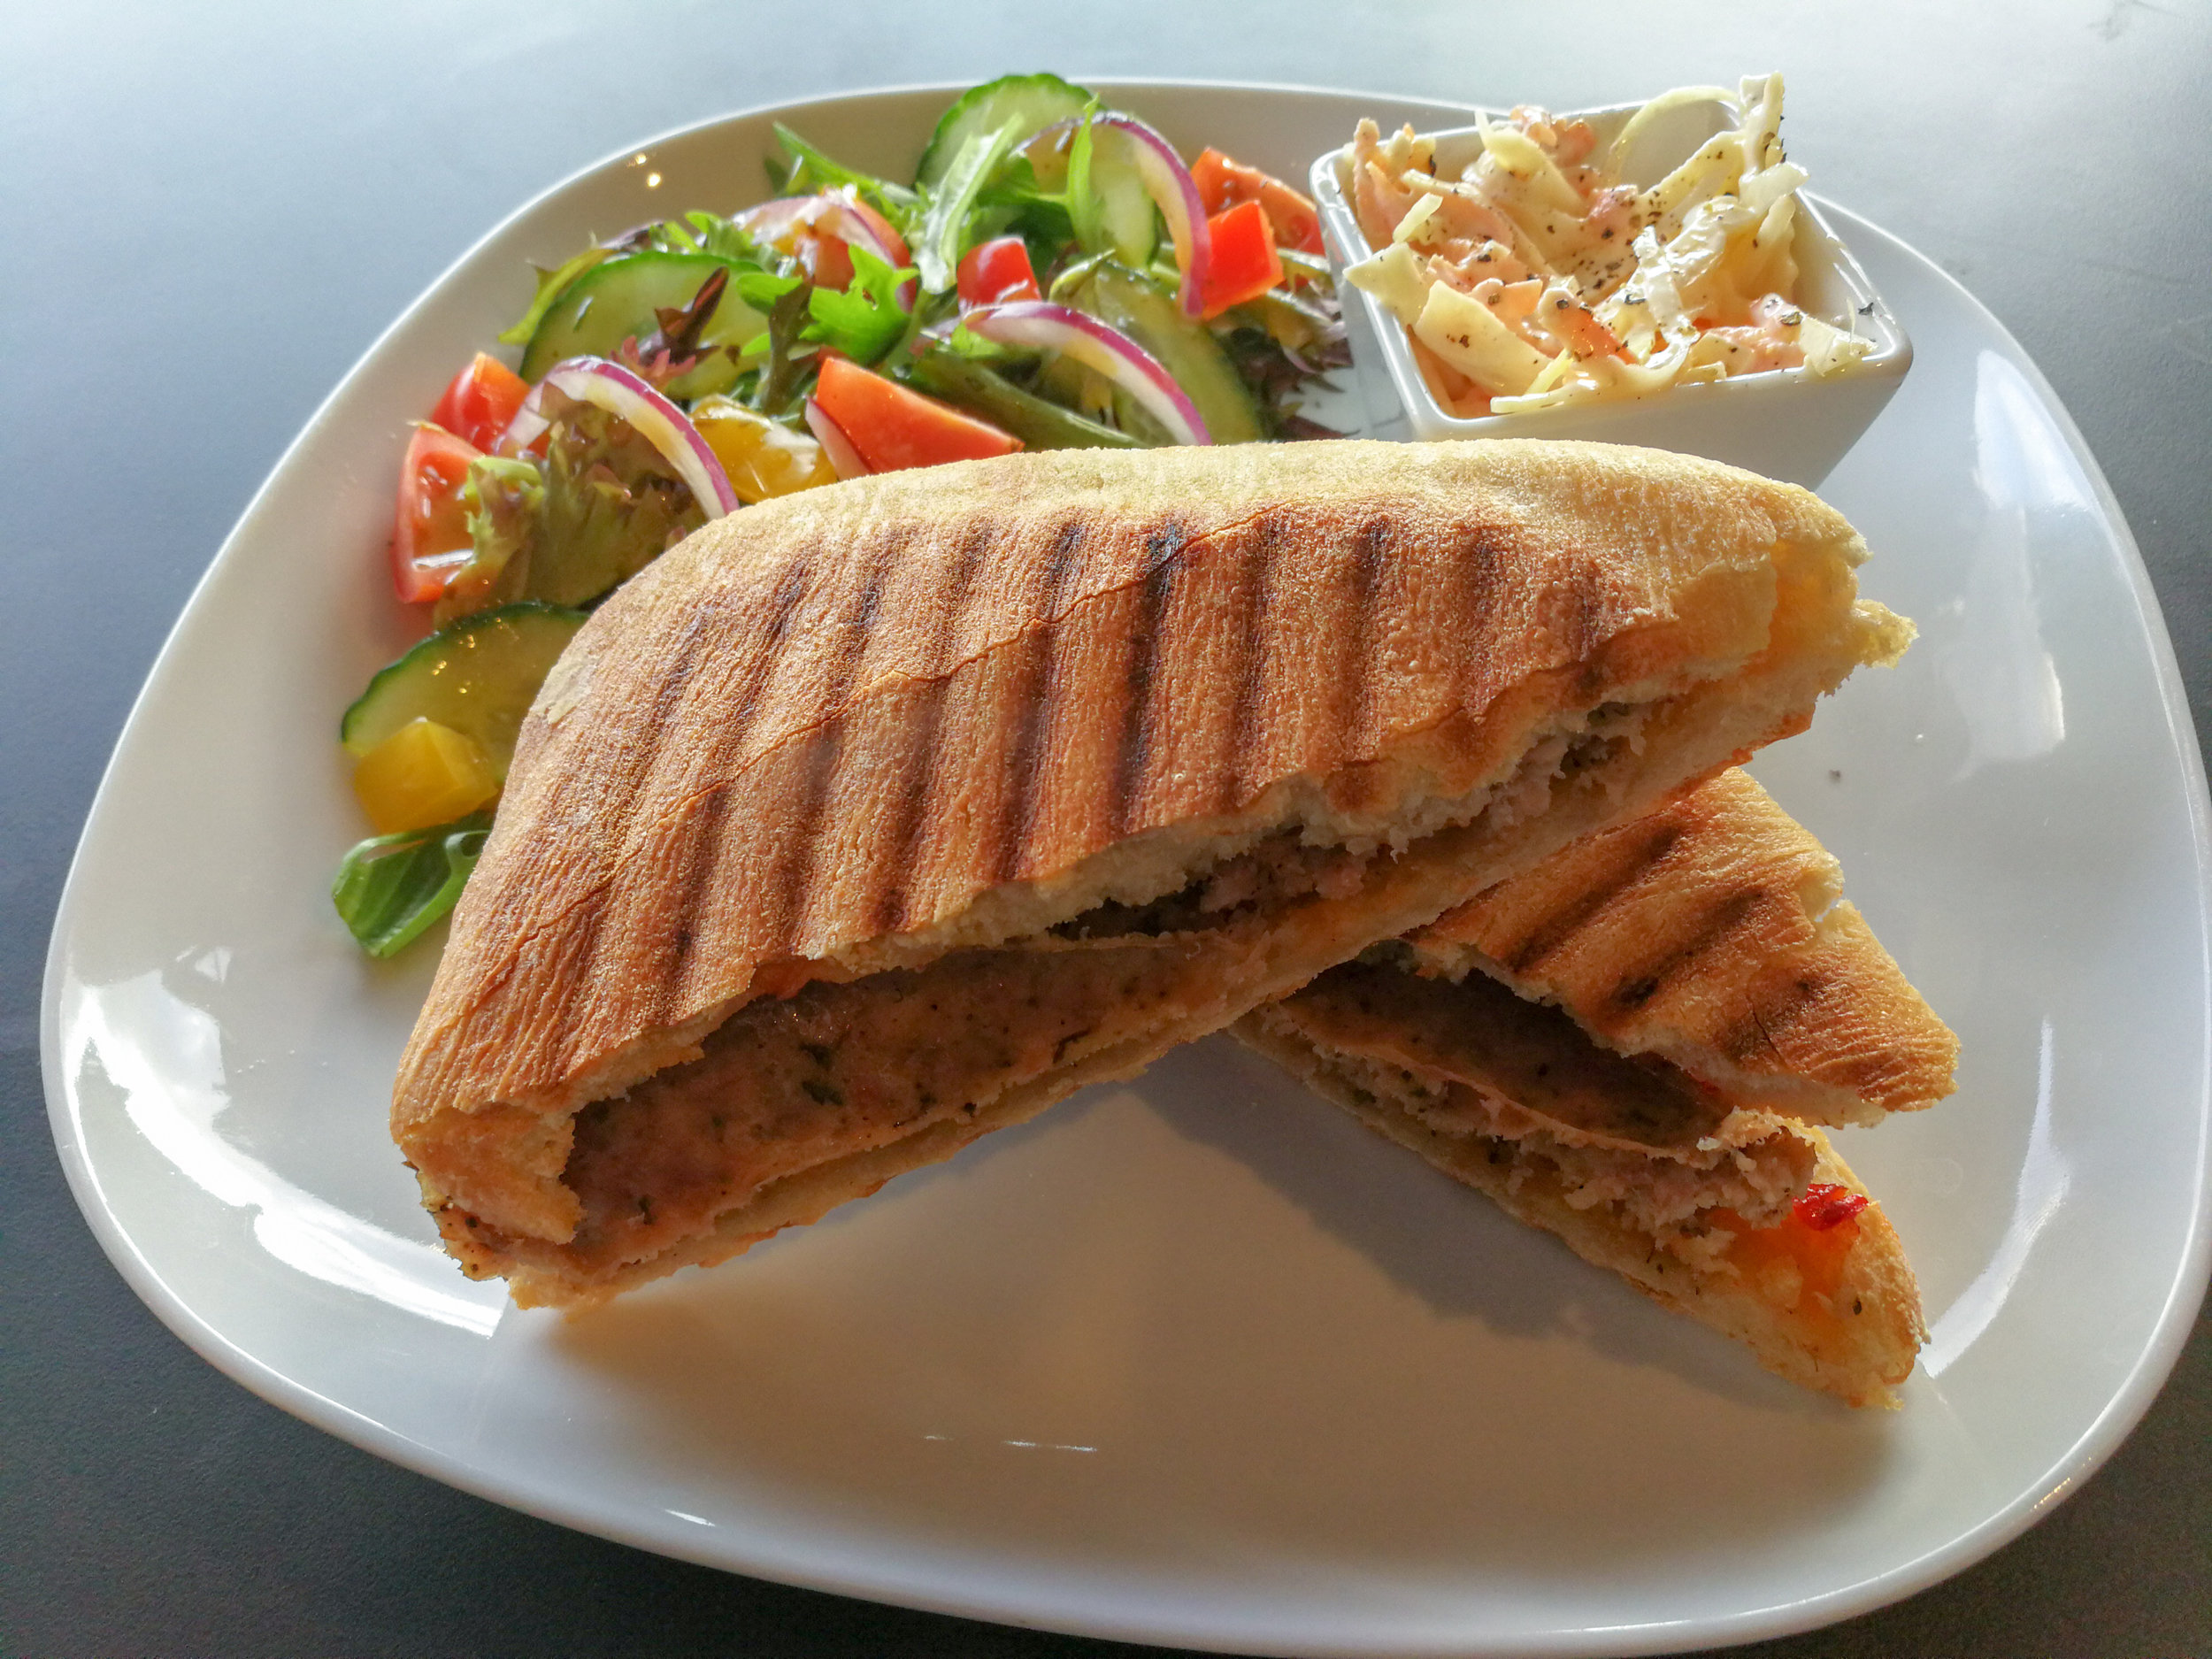 Paninis - Served on a quality ciabatta, our paninis are made fresh to order and are accompanied with a dressed mixed leaf side salad and a portion of homemade creamy coleslaw.